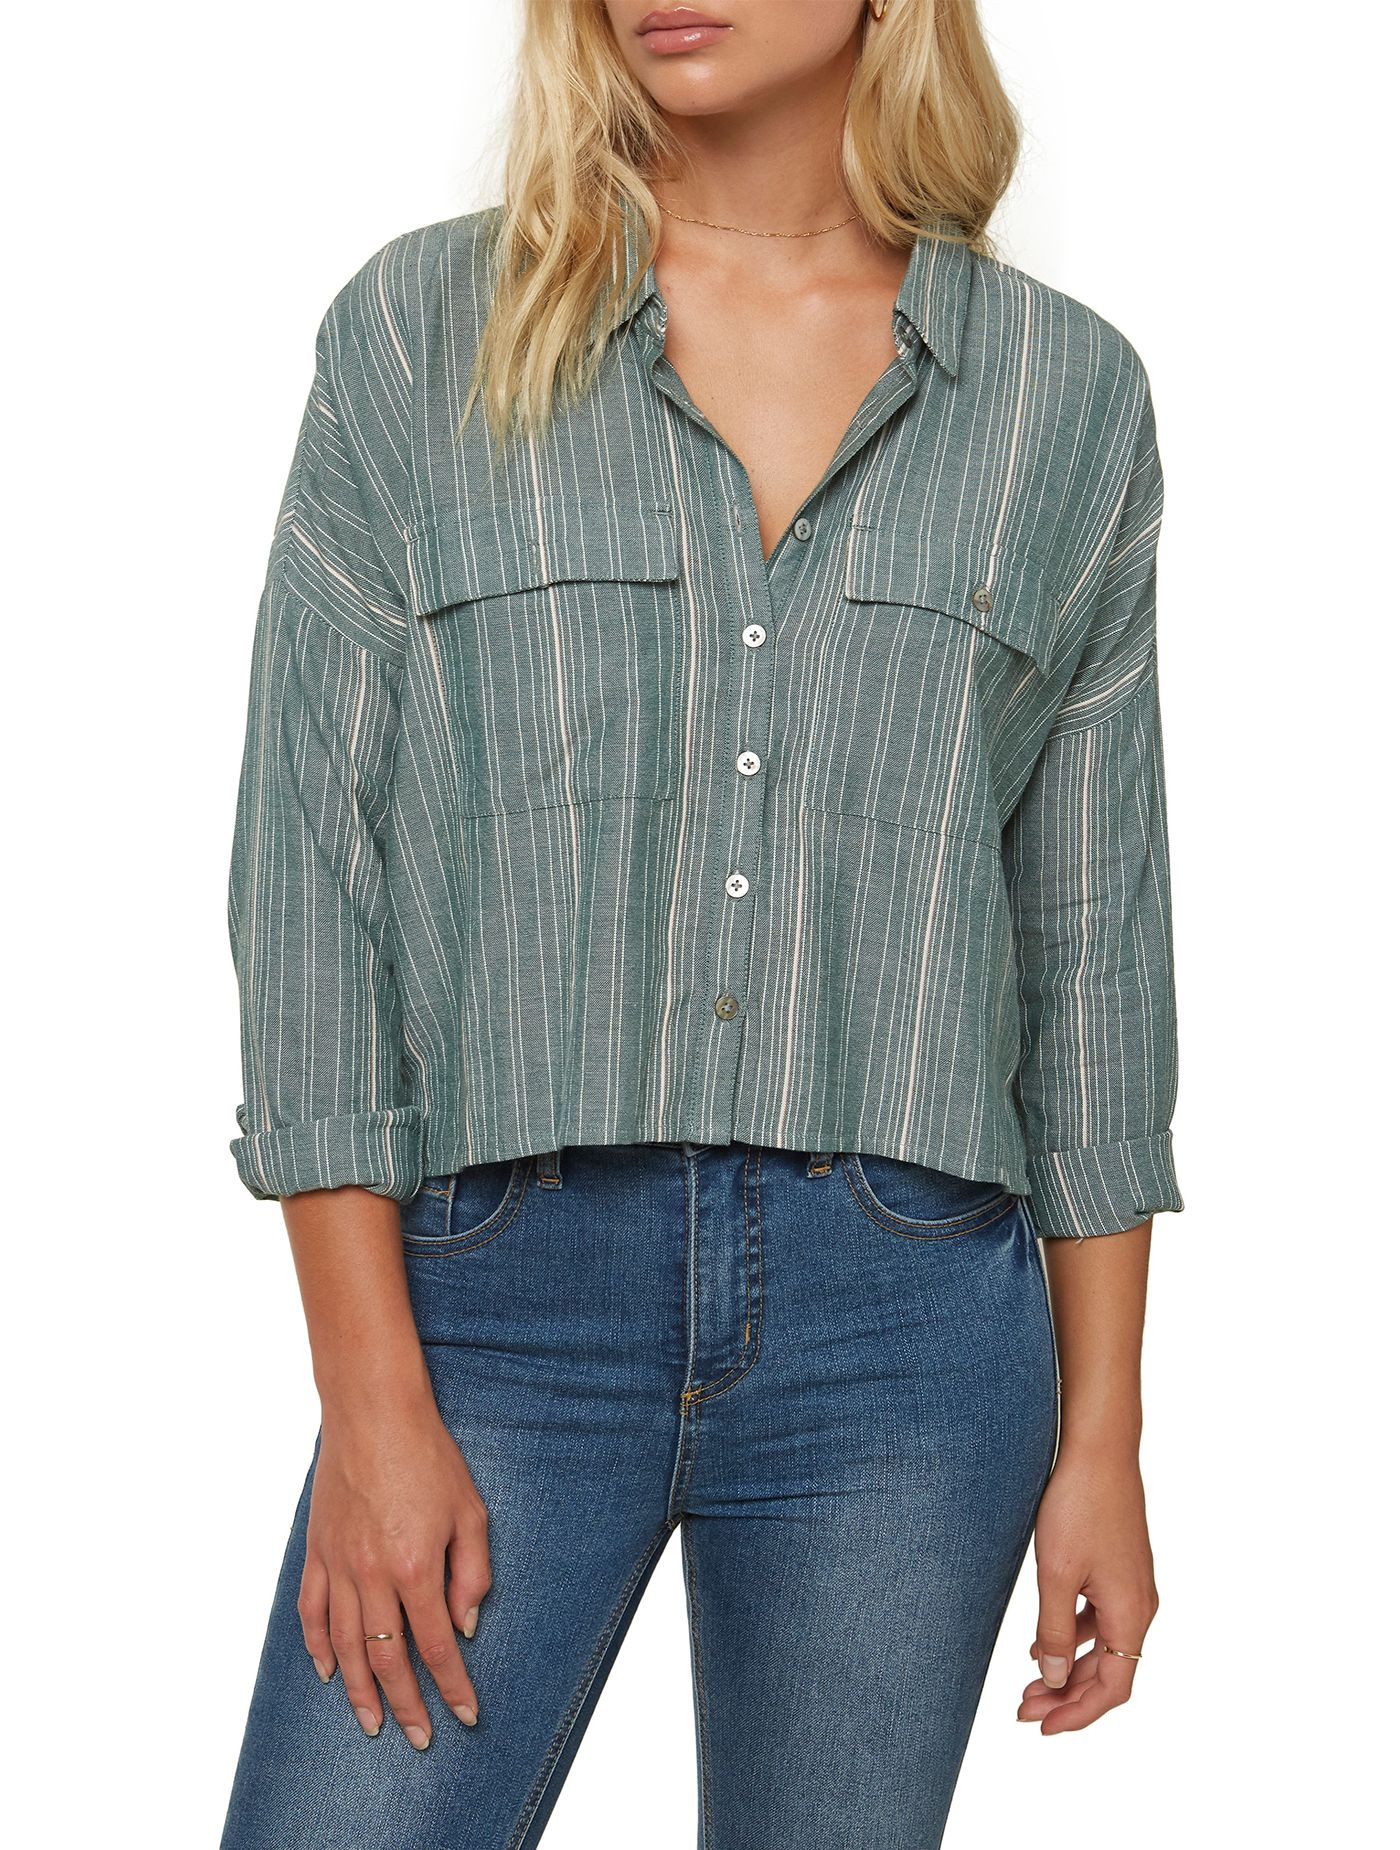 O'Neill Women's Borrego Stripe Top